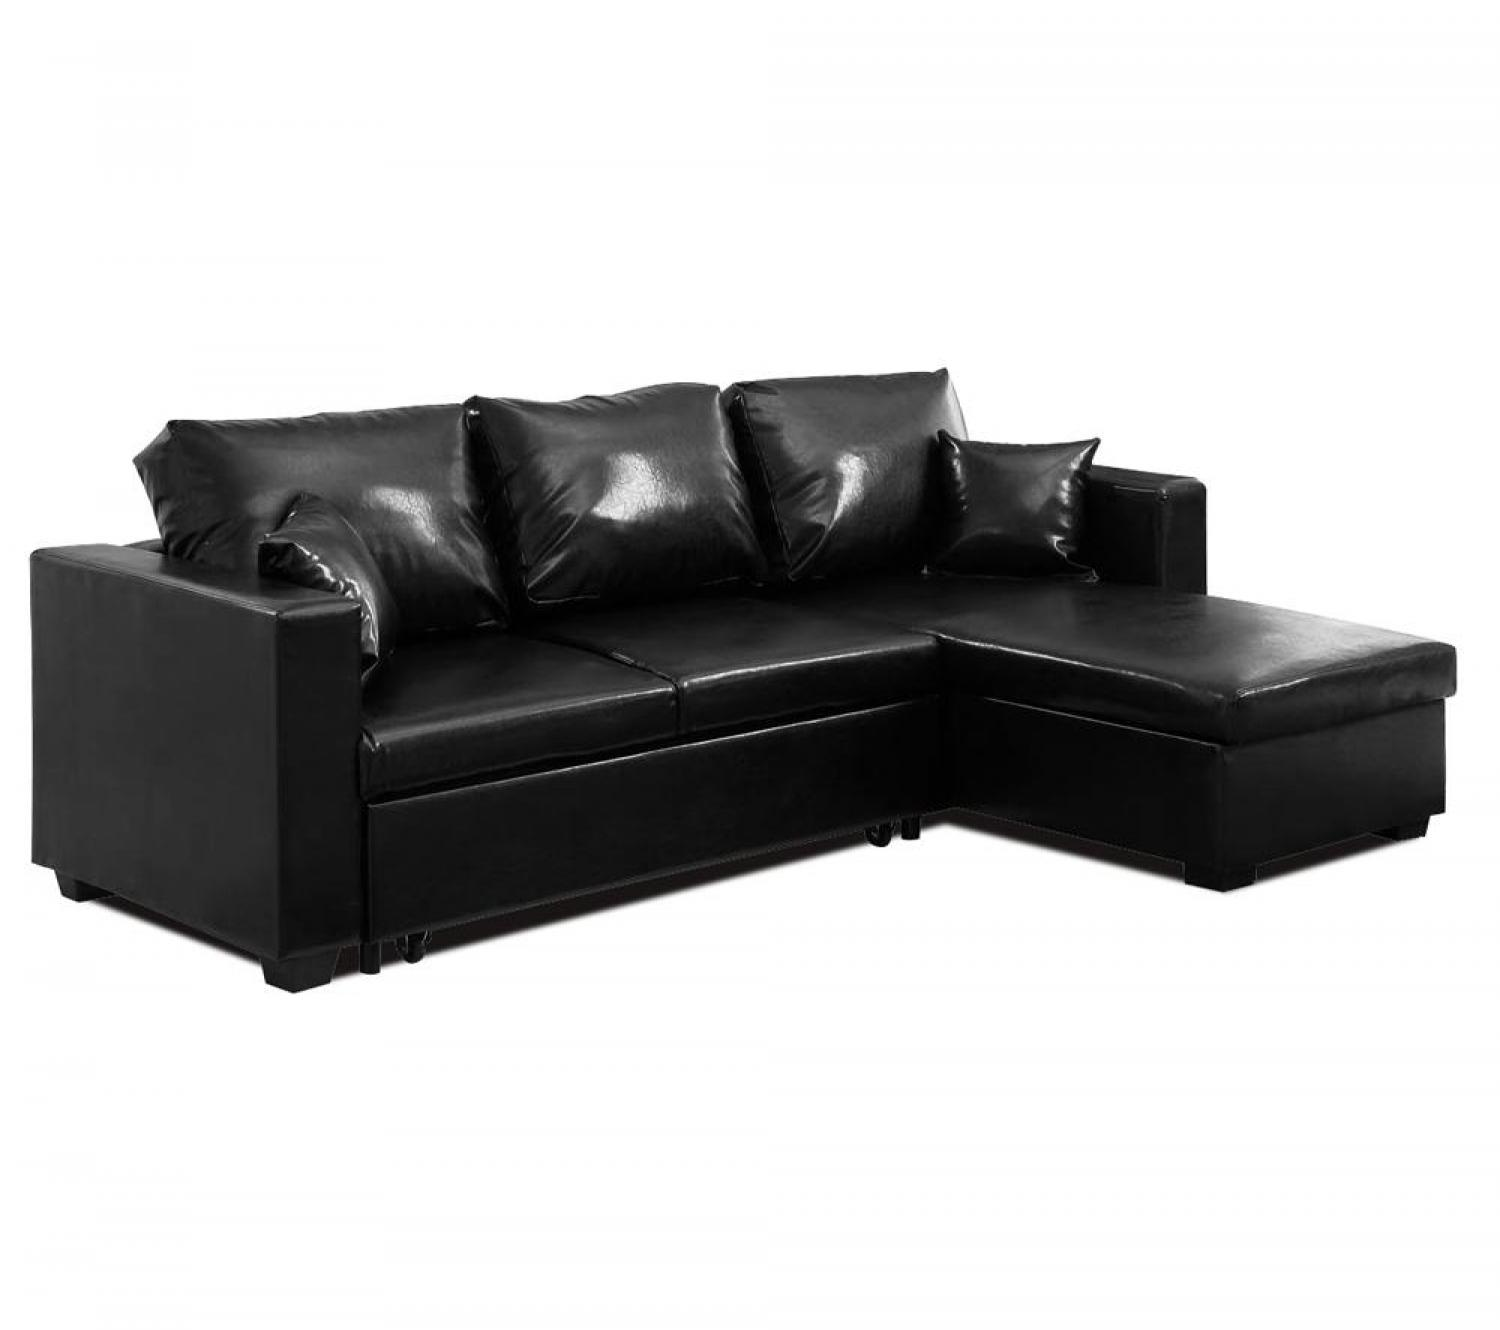 canap angle pas cher carrefour. Black Bedroom Furniture Sets. Home Design Ideas